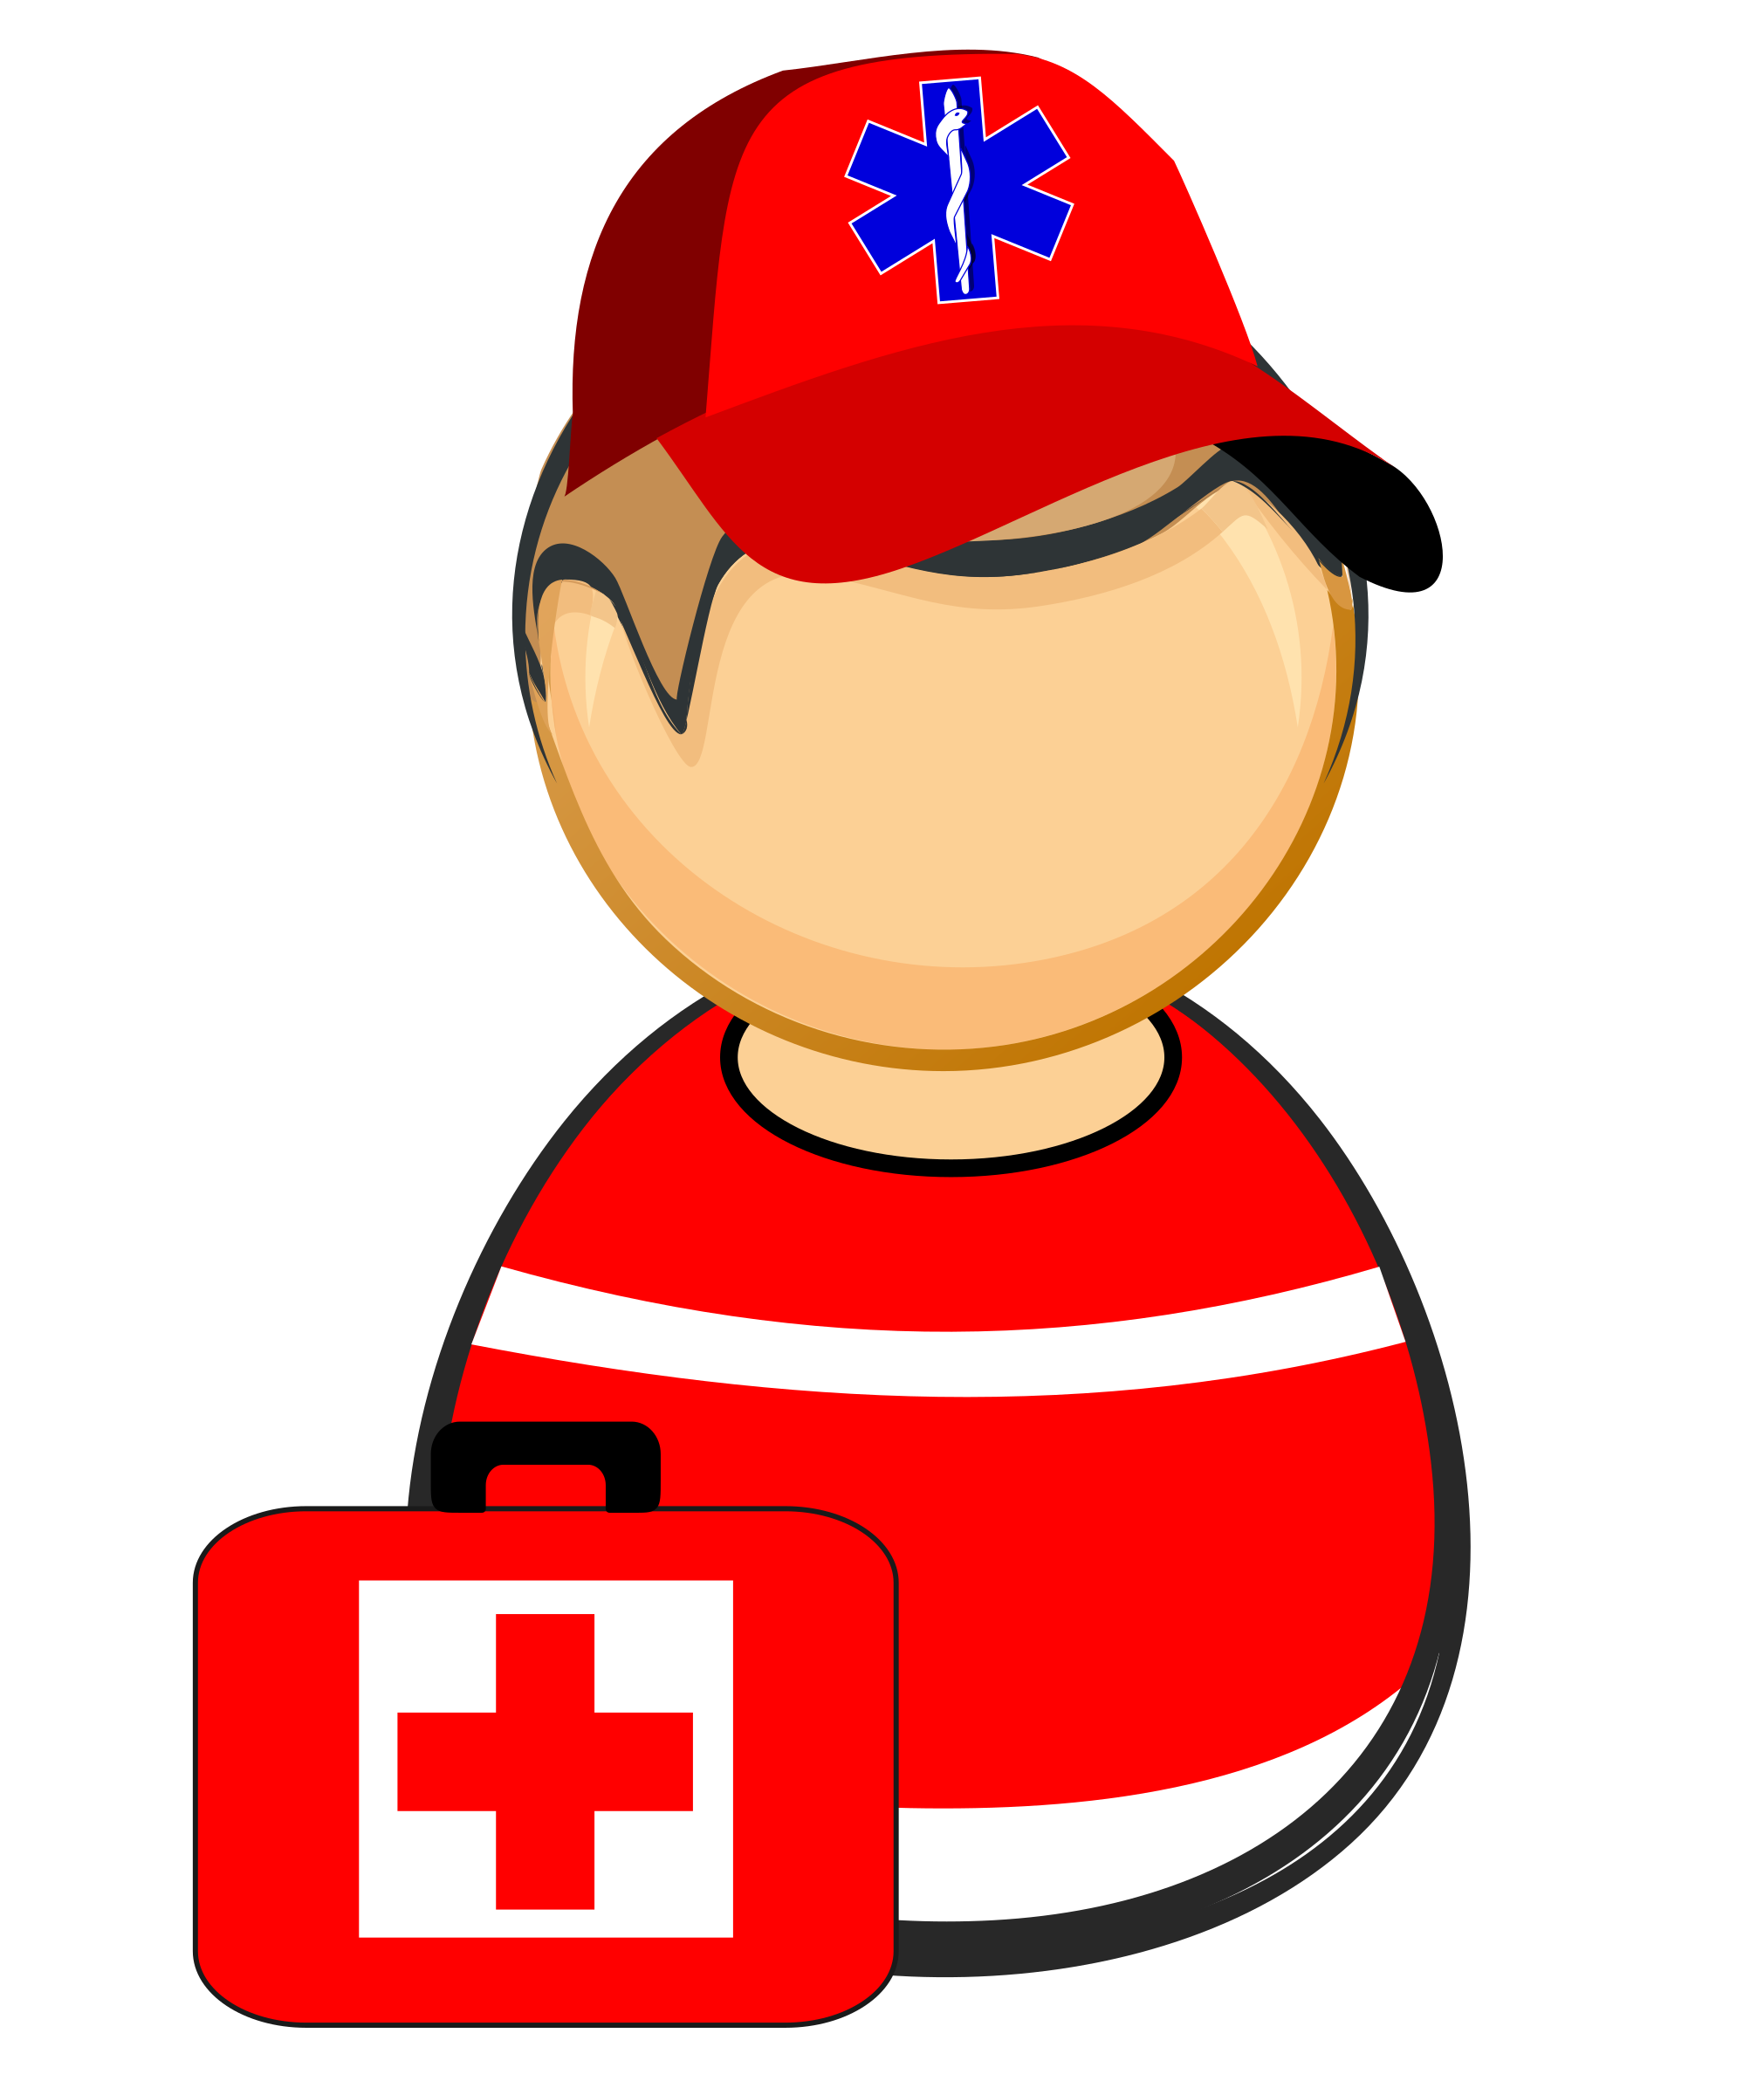 Red Cross clipart paramedic #15